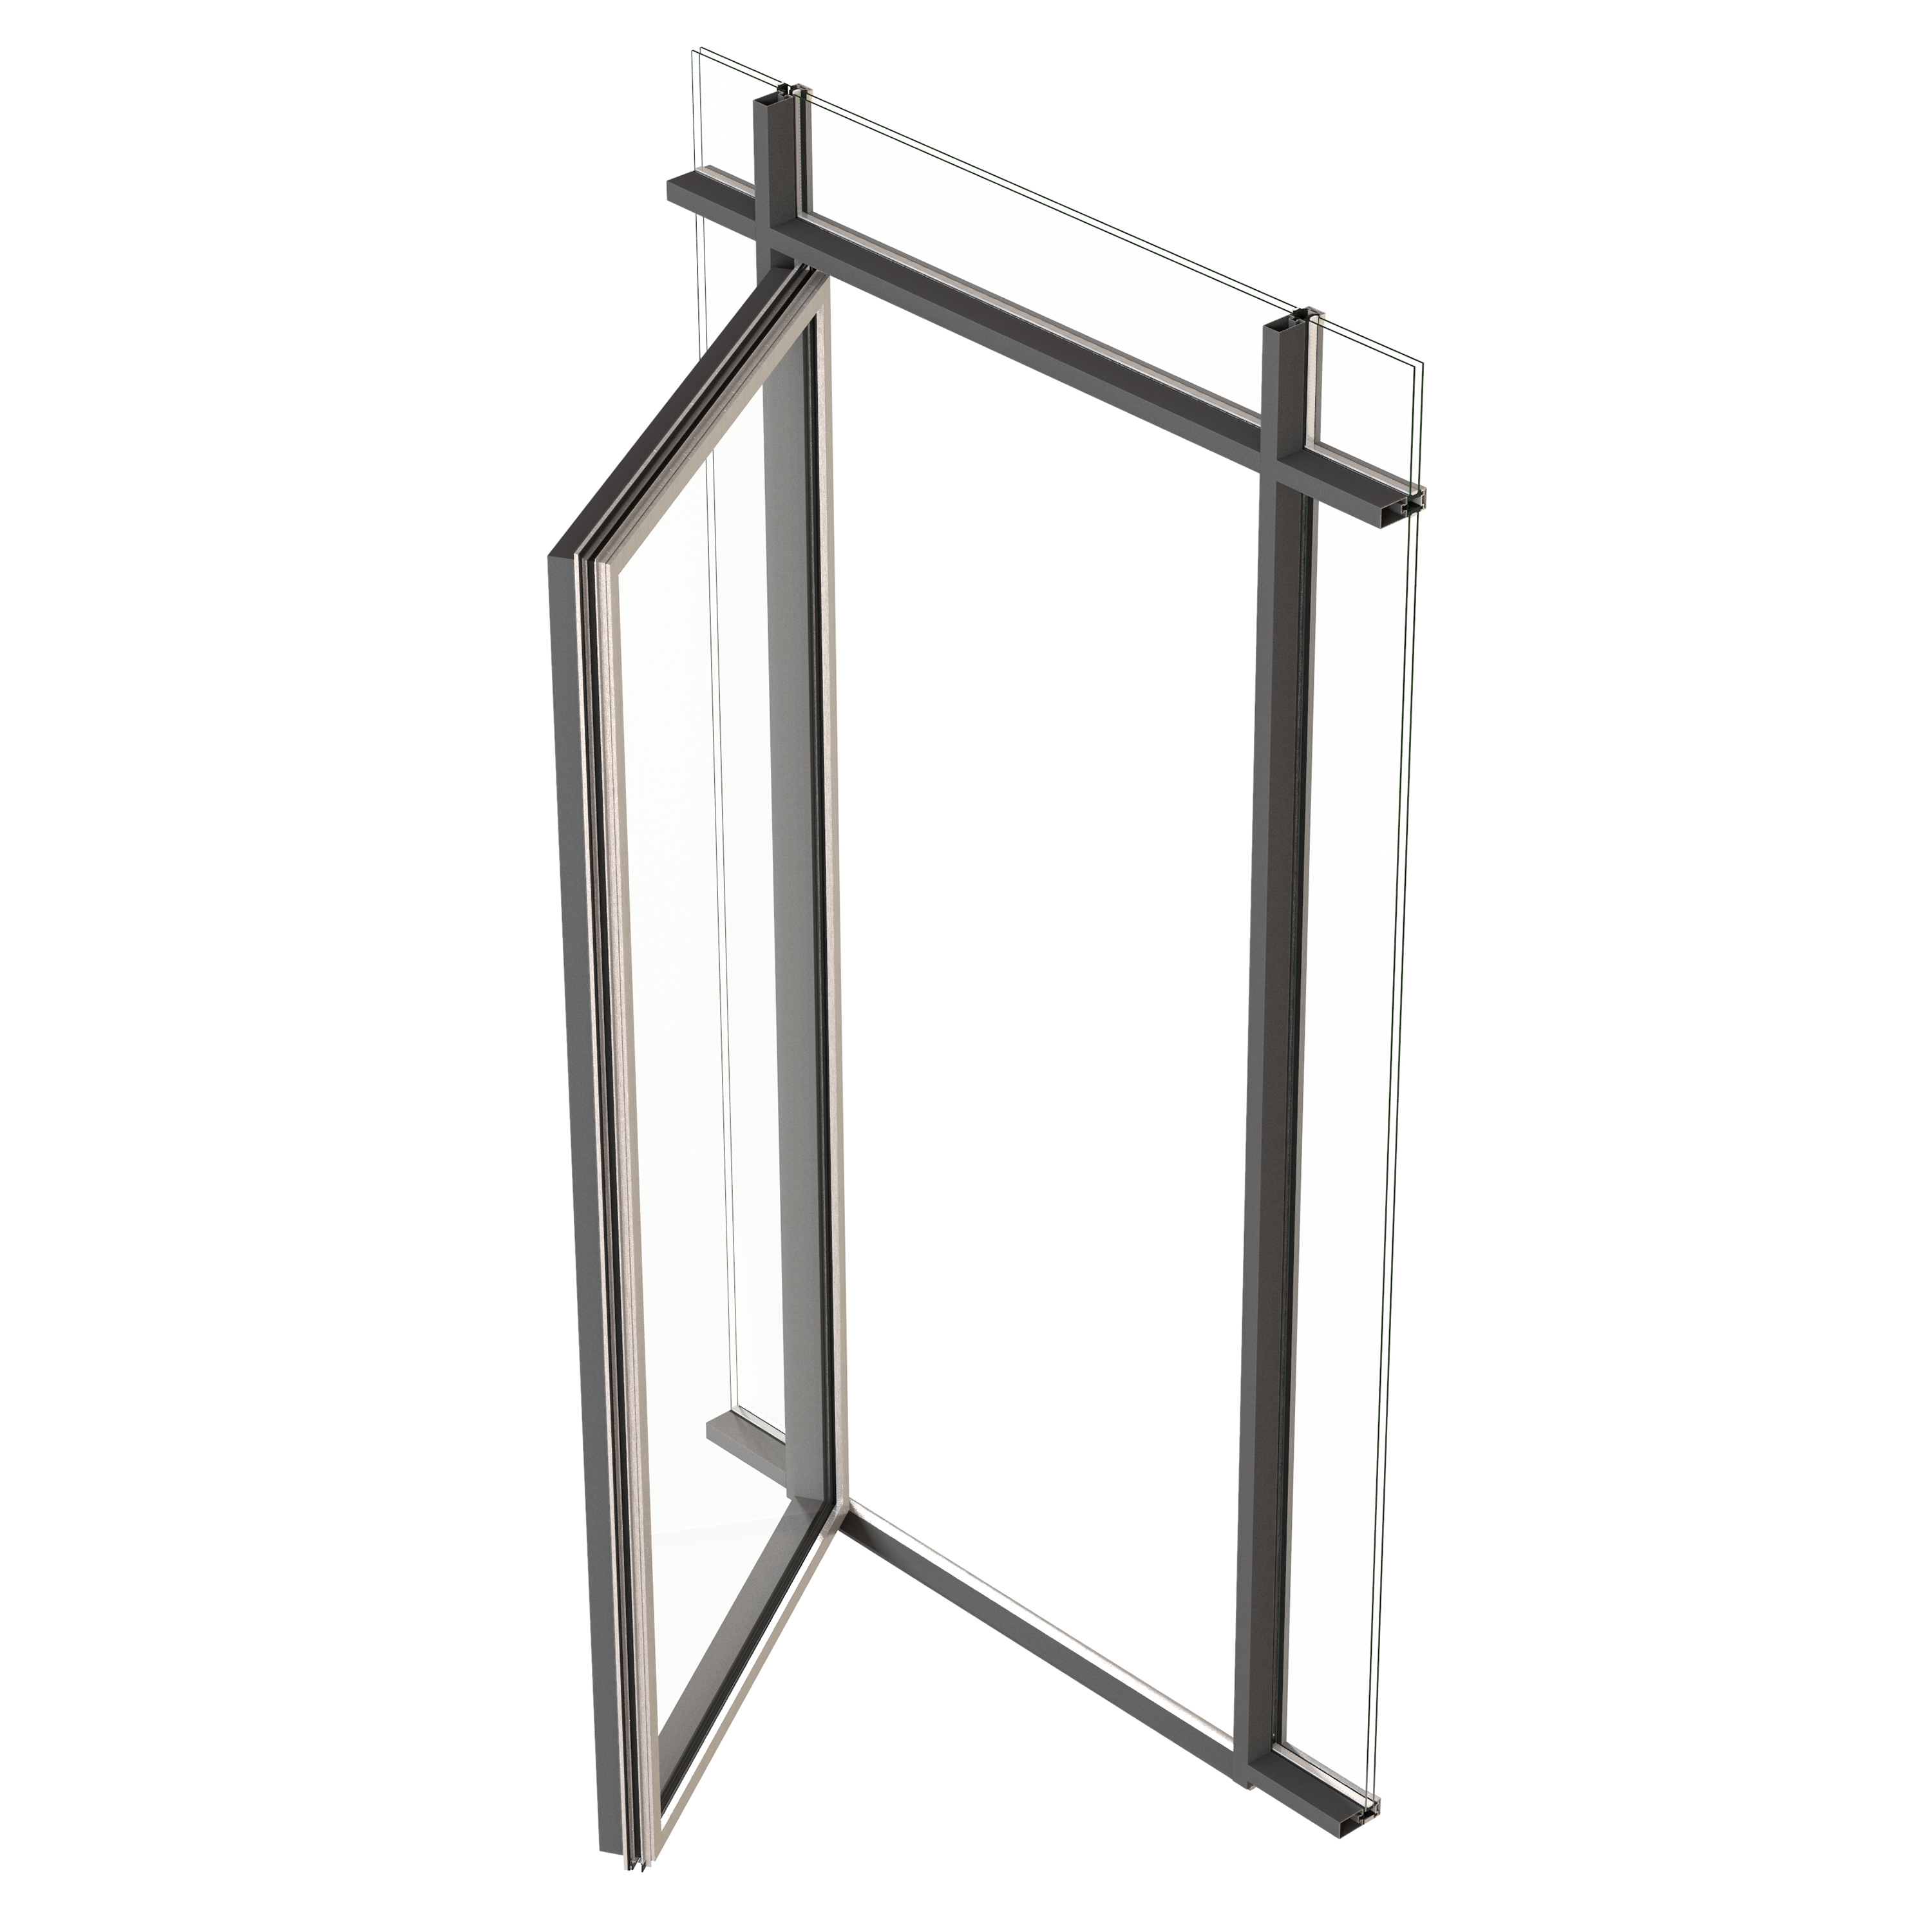 VISS side-hung/pivot door